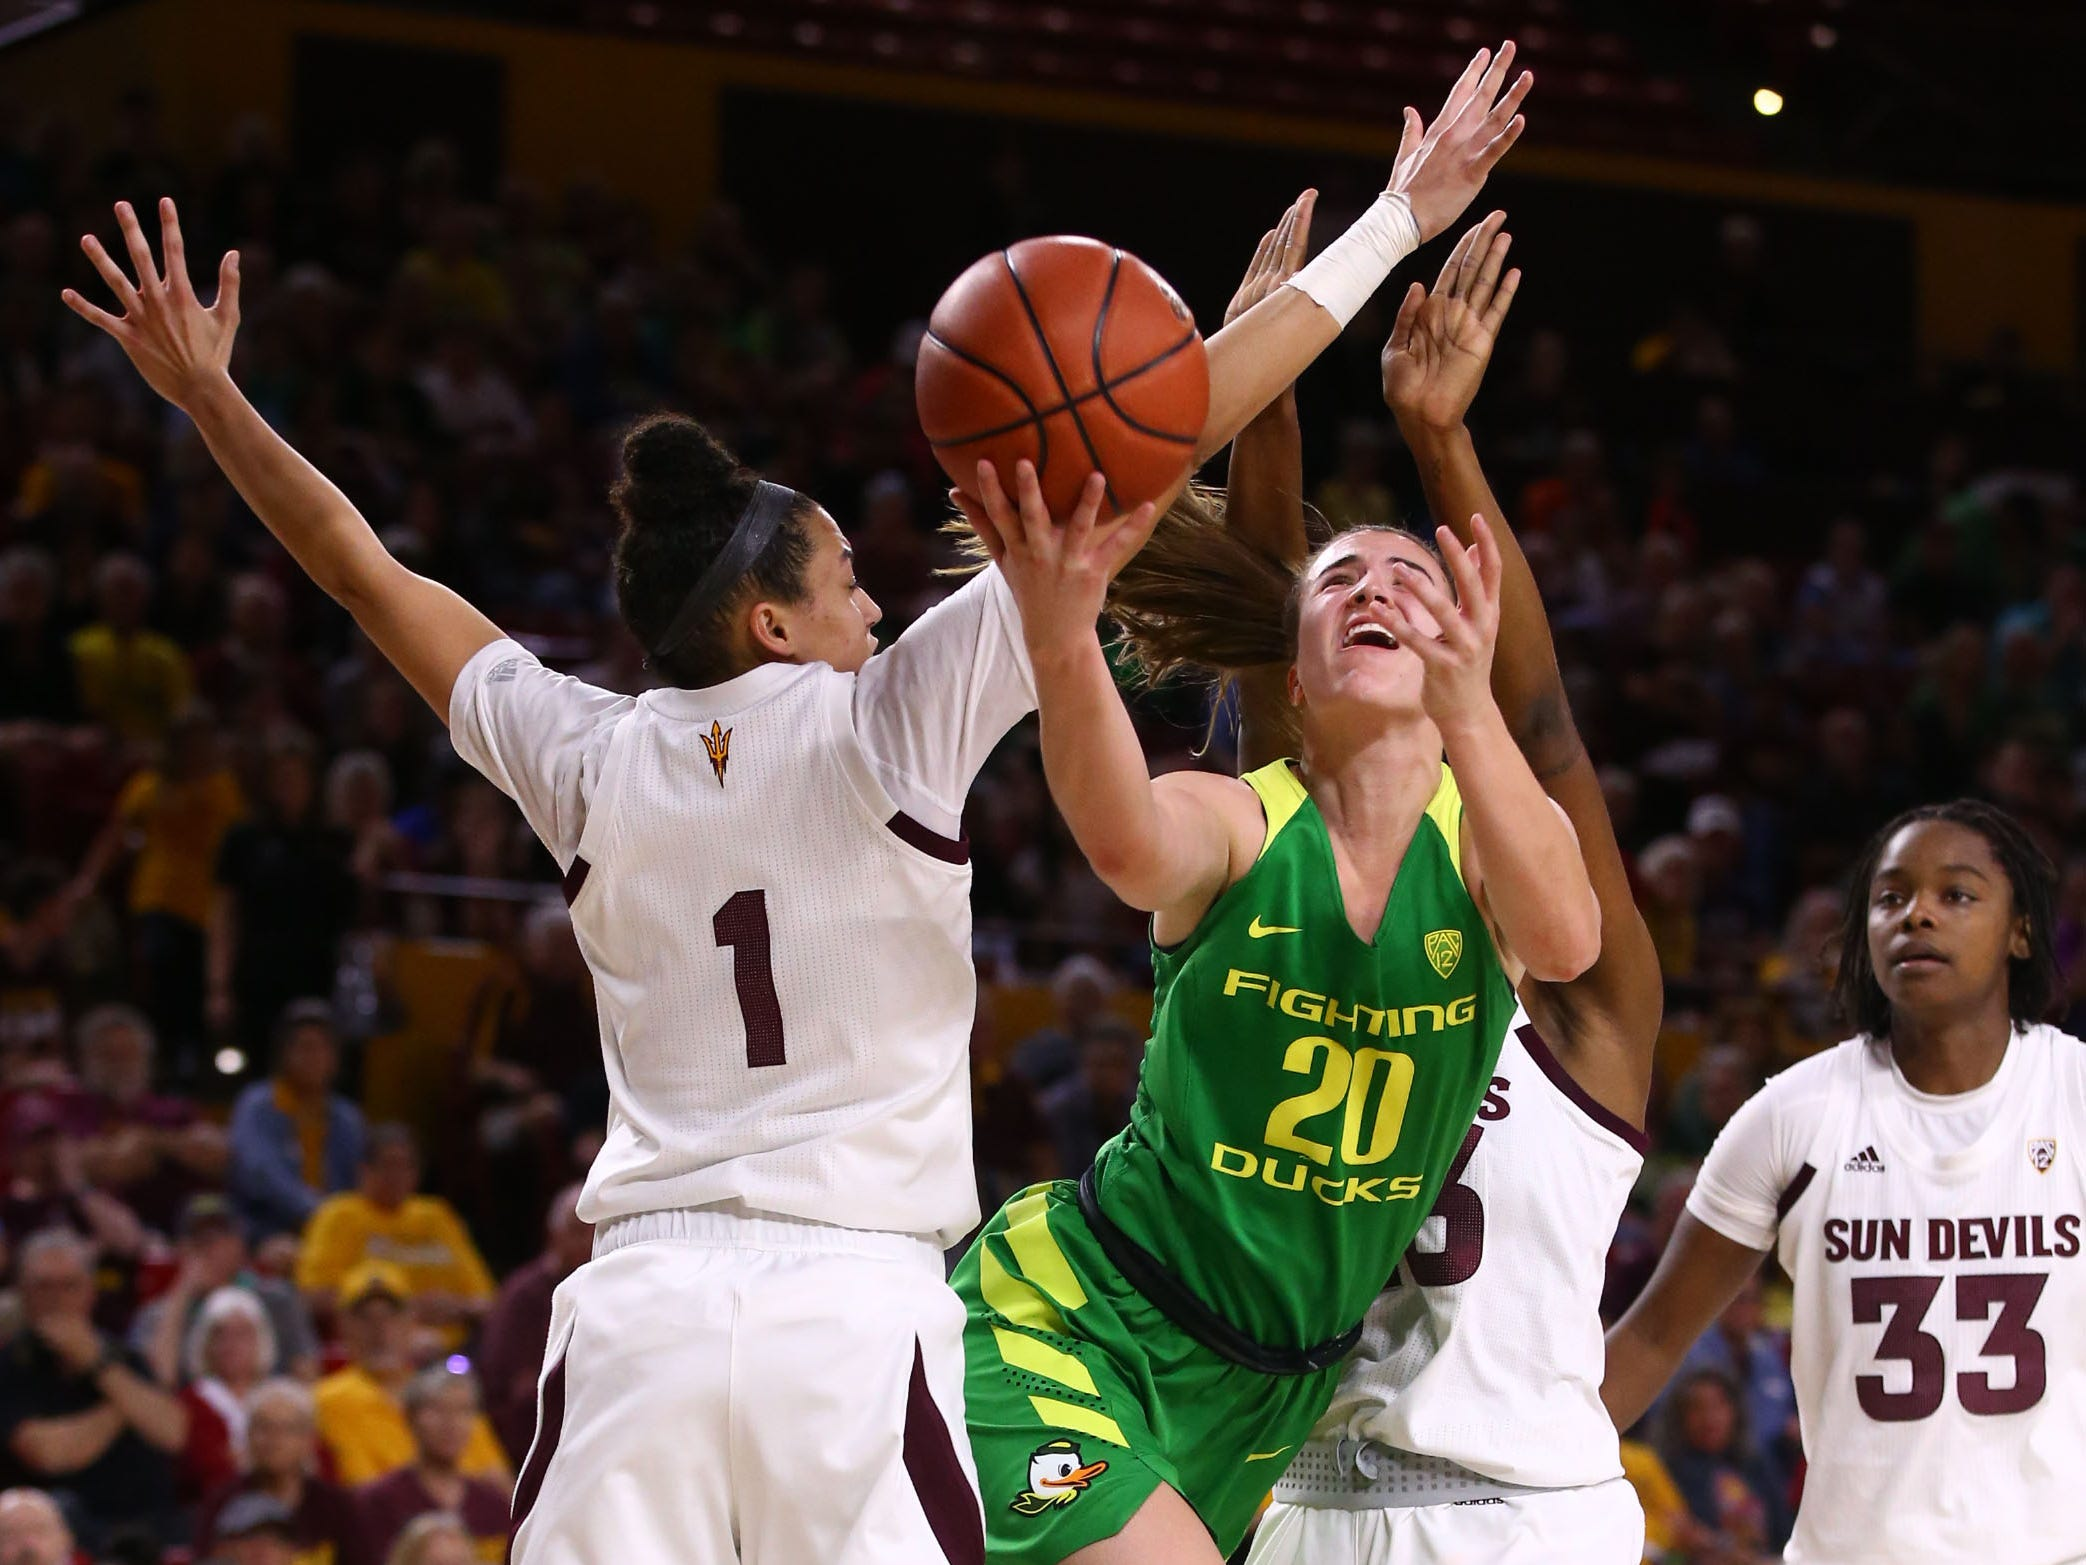 Oregon Ducks guard Sabrina Ionescu (20) shoots and scores past Arizona State Sun Devils guard Reili Richardson (1) in the first half on Mar. 3, 2019, at Wells Fargo Arena in Tempe, Ariz.